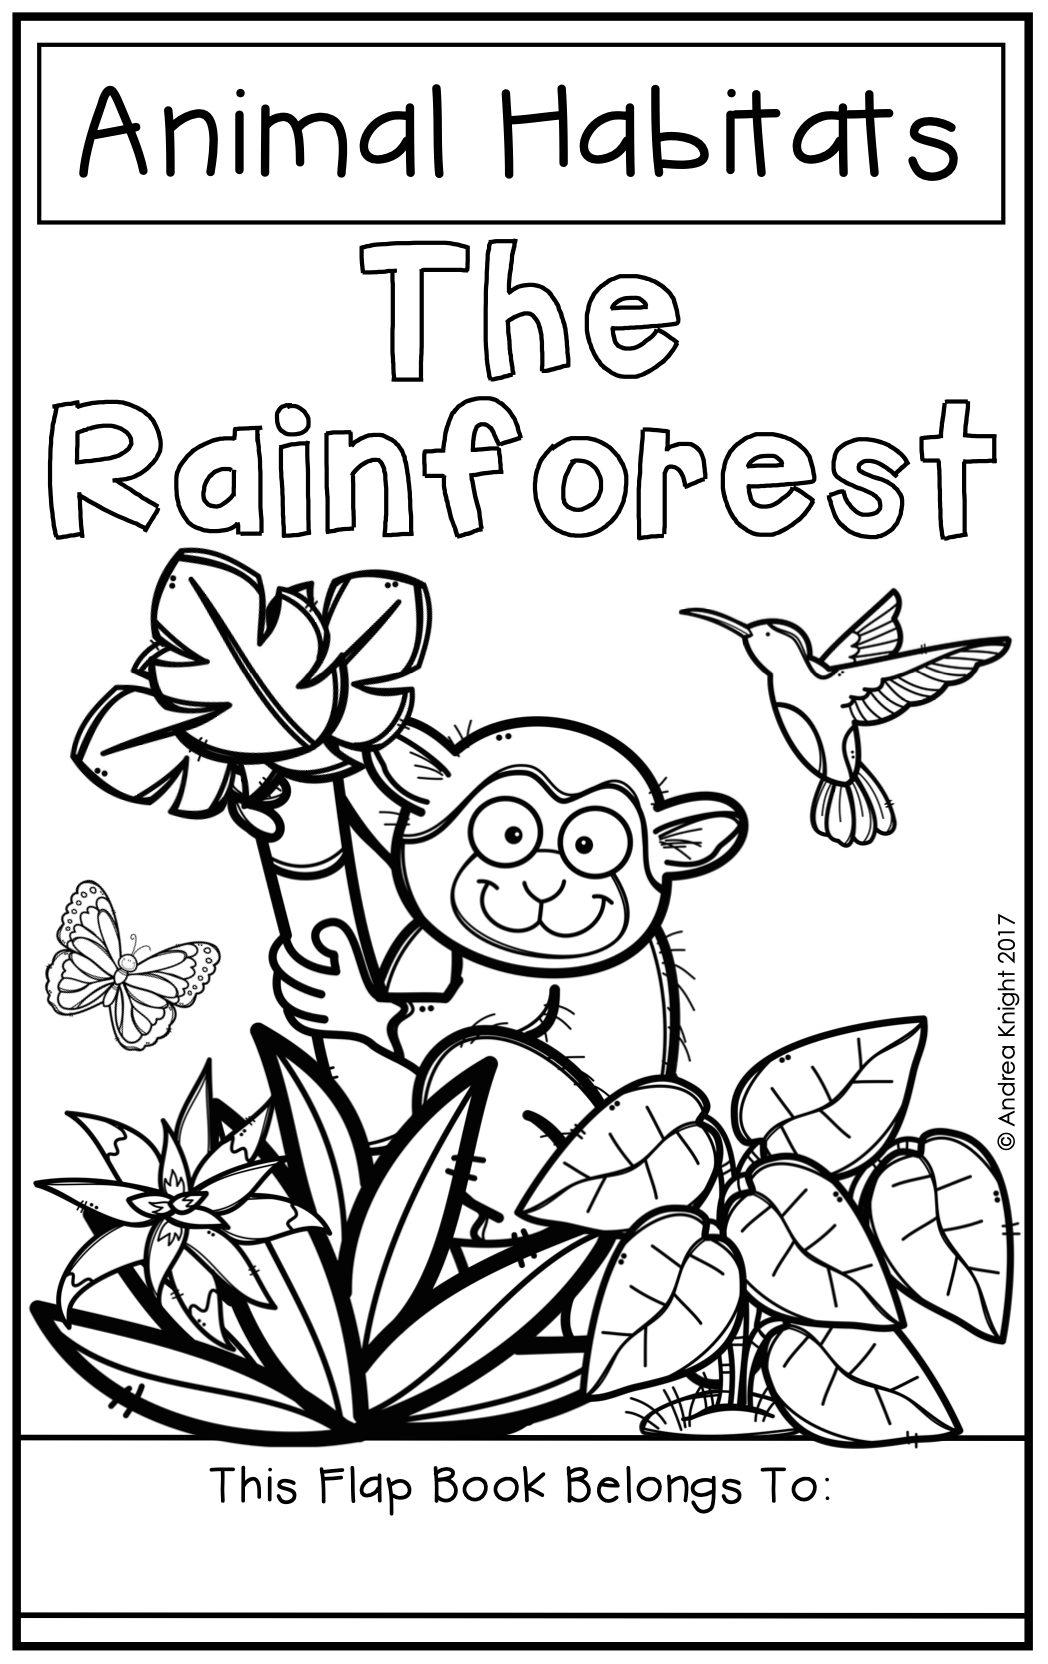 Animal Habitats The Rainforest A Flap Book Project For